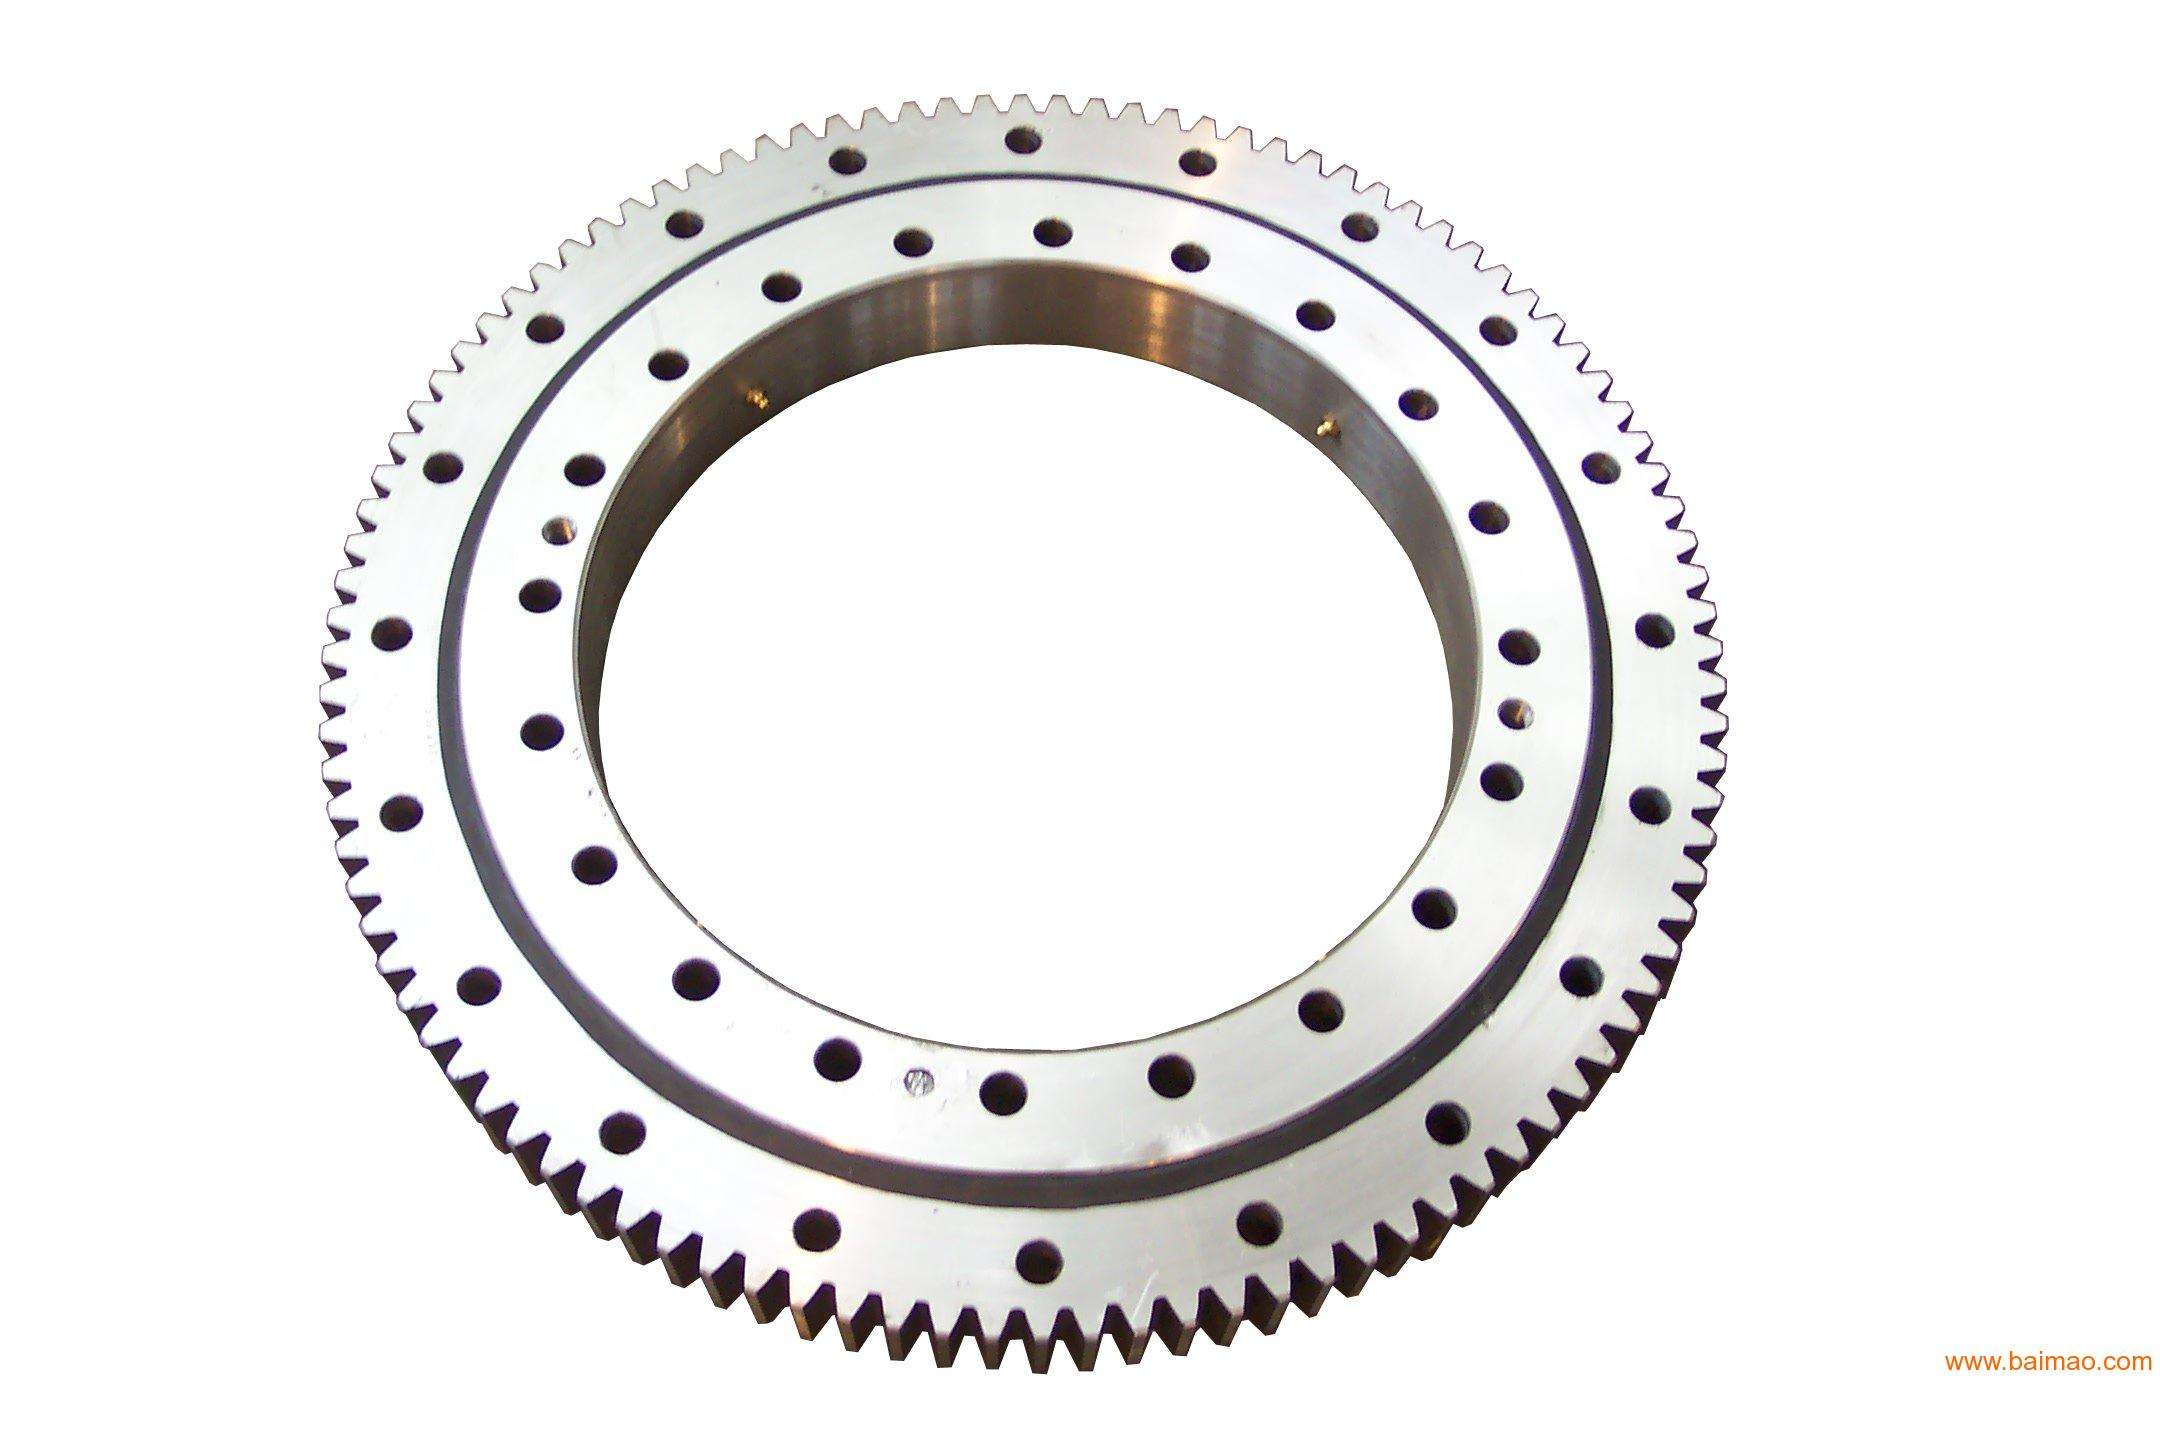 Provide komatsu Crane slewing bearing customize service with lowest price